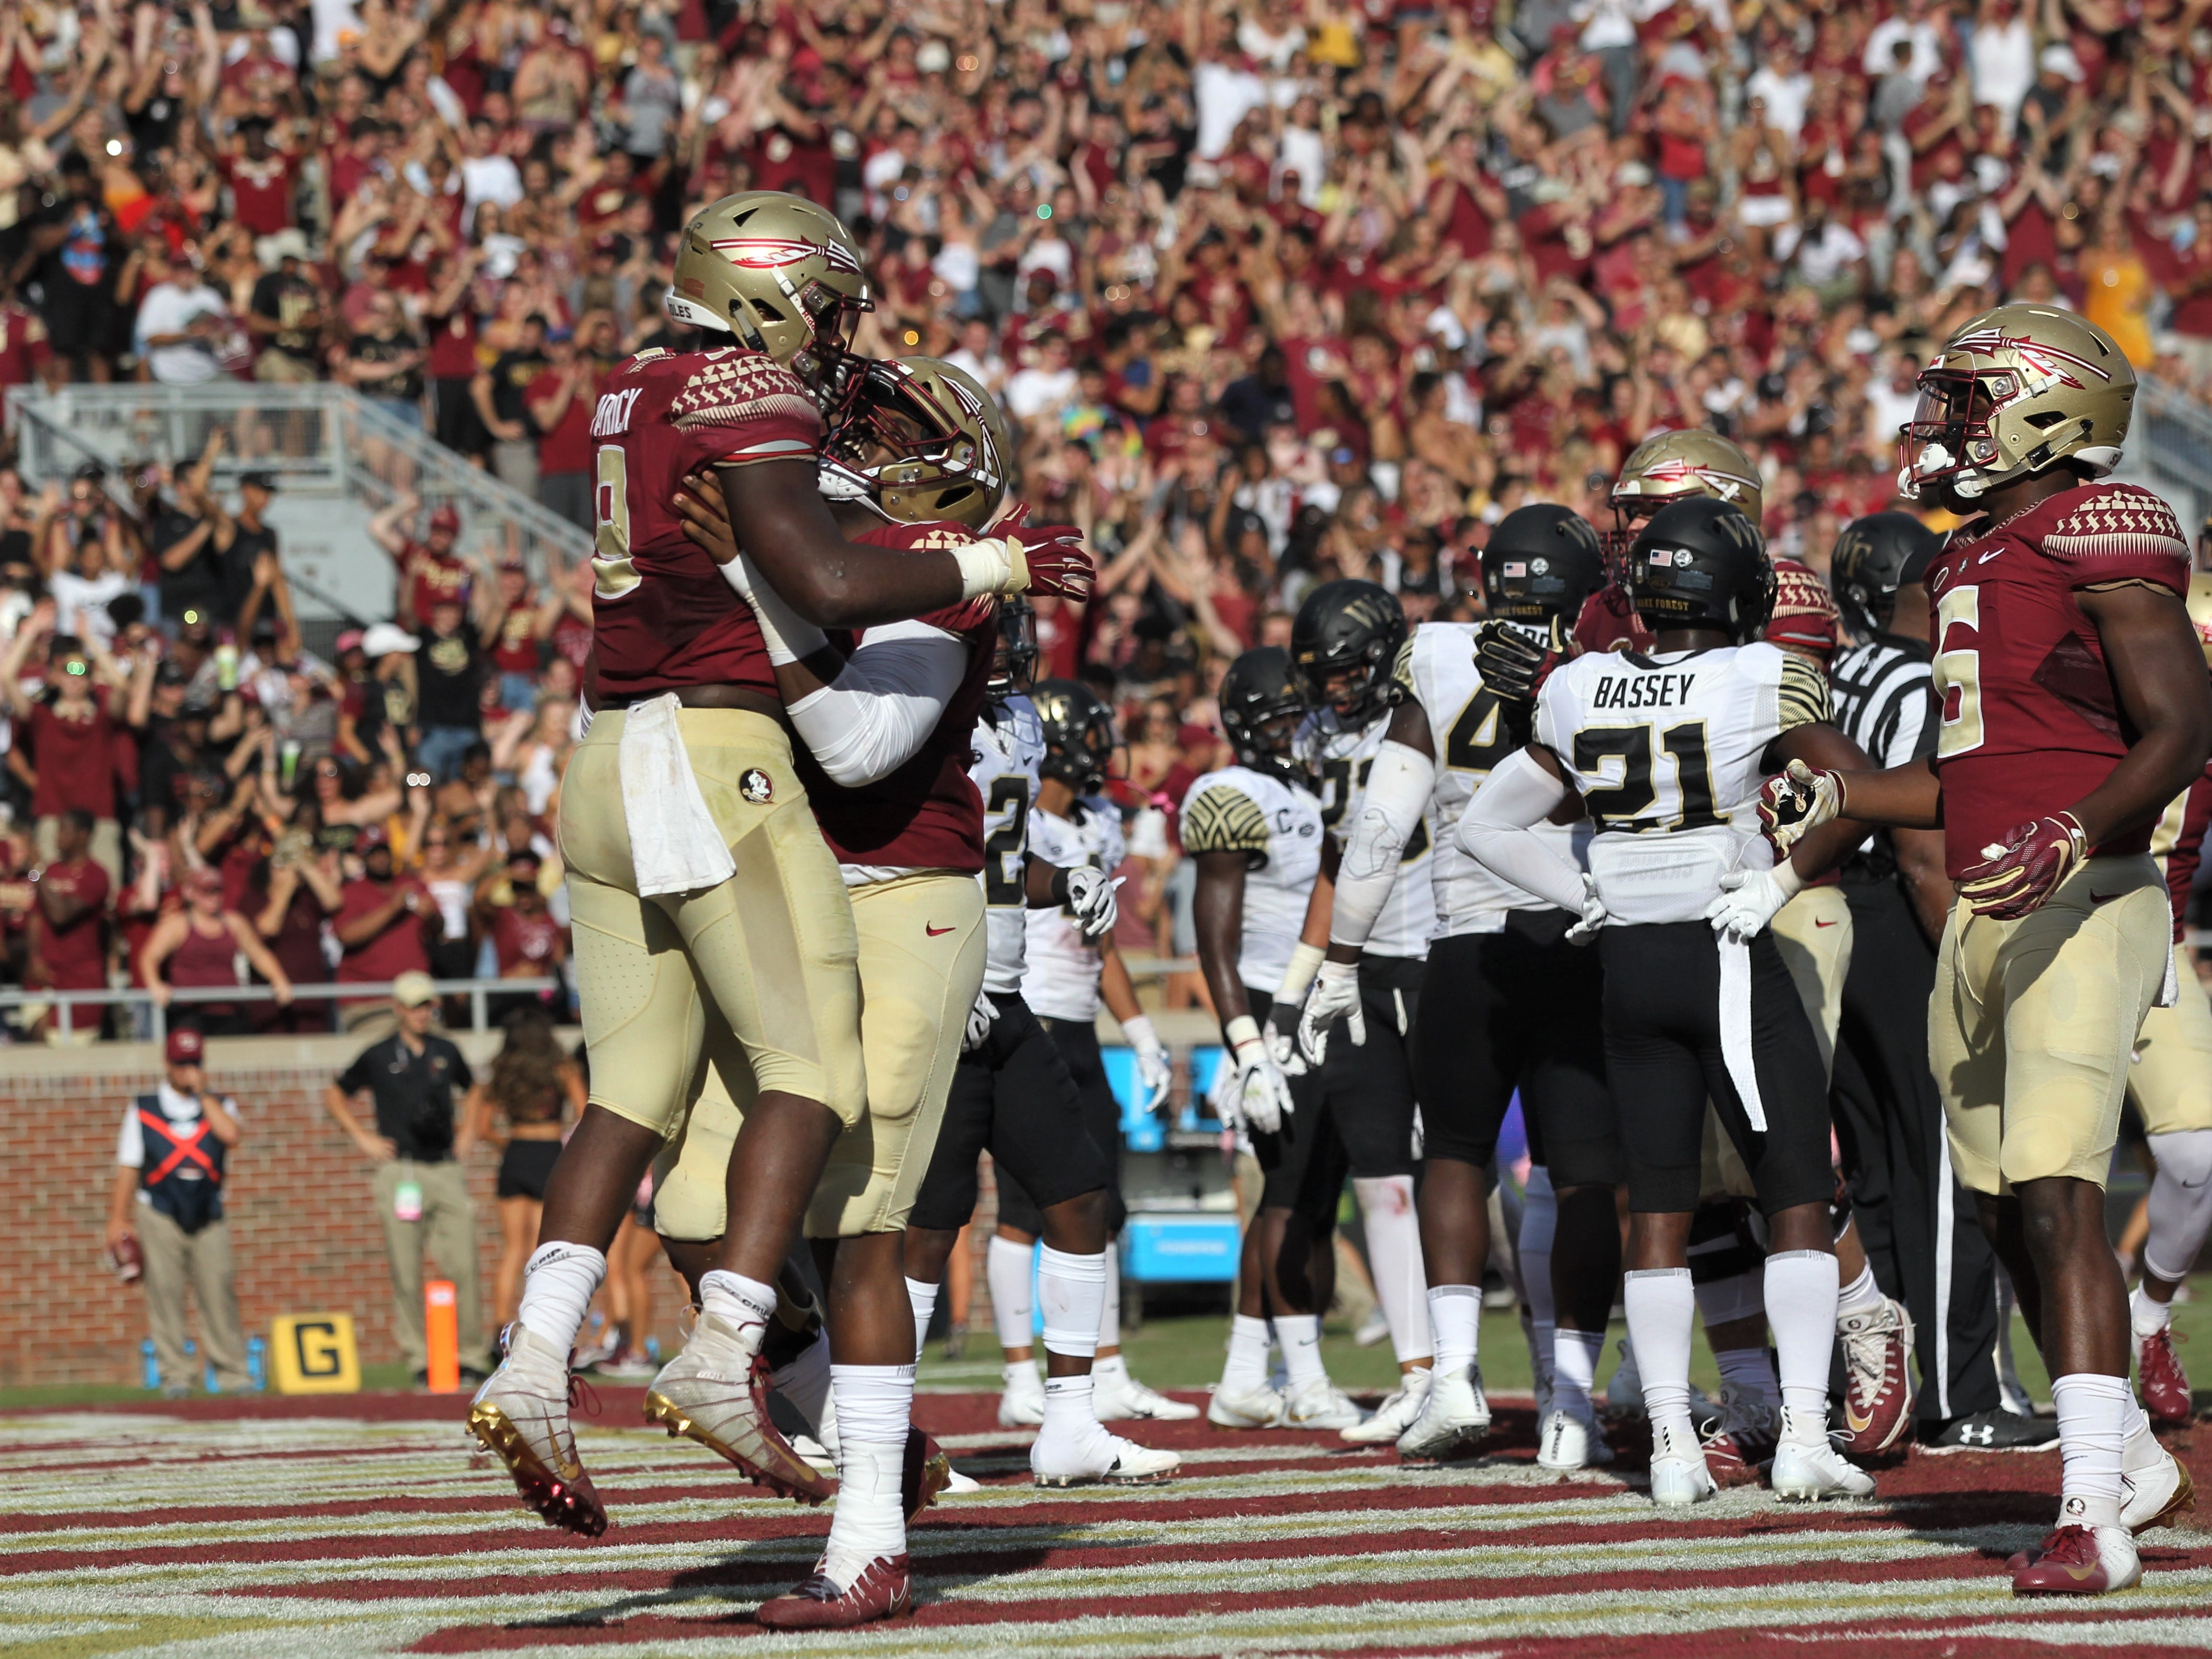 Florida State running back Jacques Patrick is lifted up by offensive lineman Baveon Johnson after a two-yard touchdown run in the second quarter of a game against Wake Forest at Doak Campbell Stadium on Oct. 20, 2018.